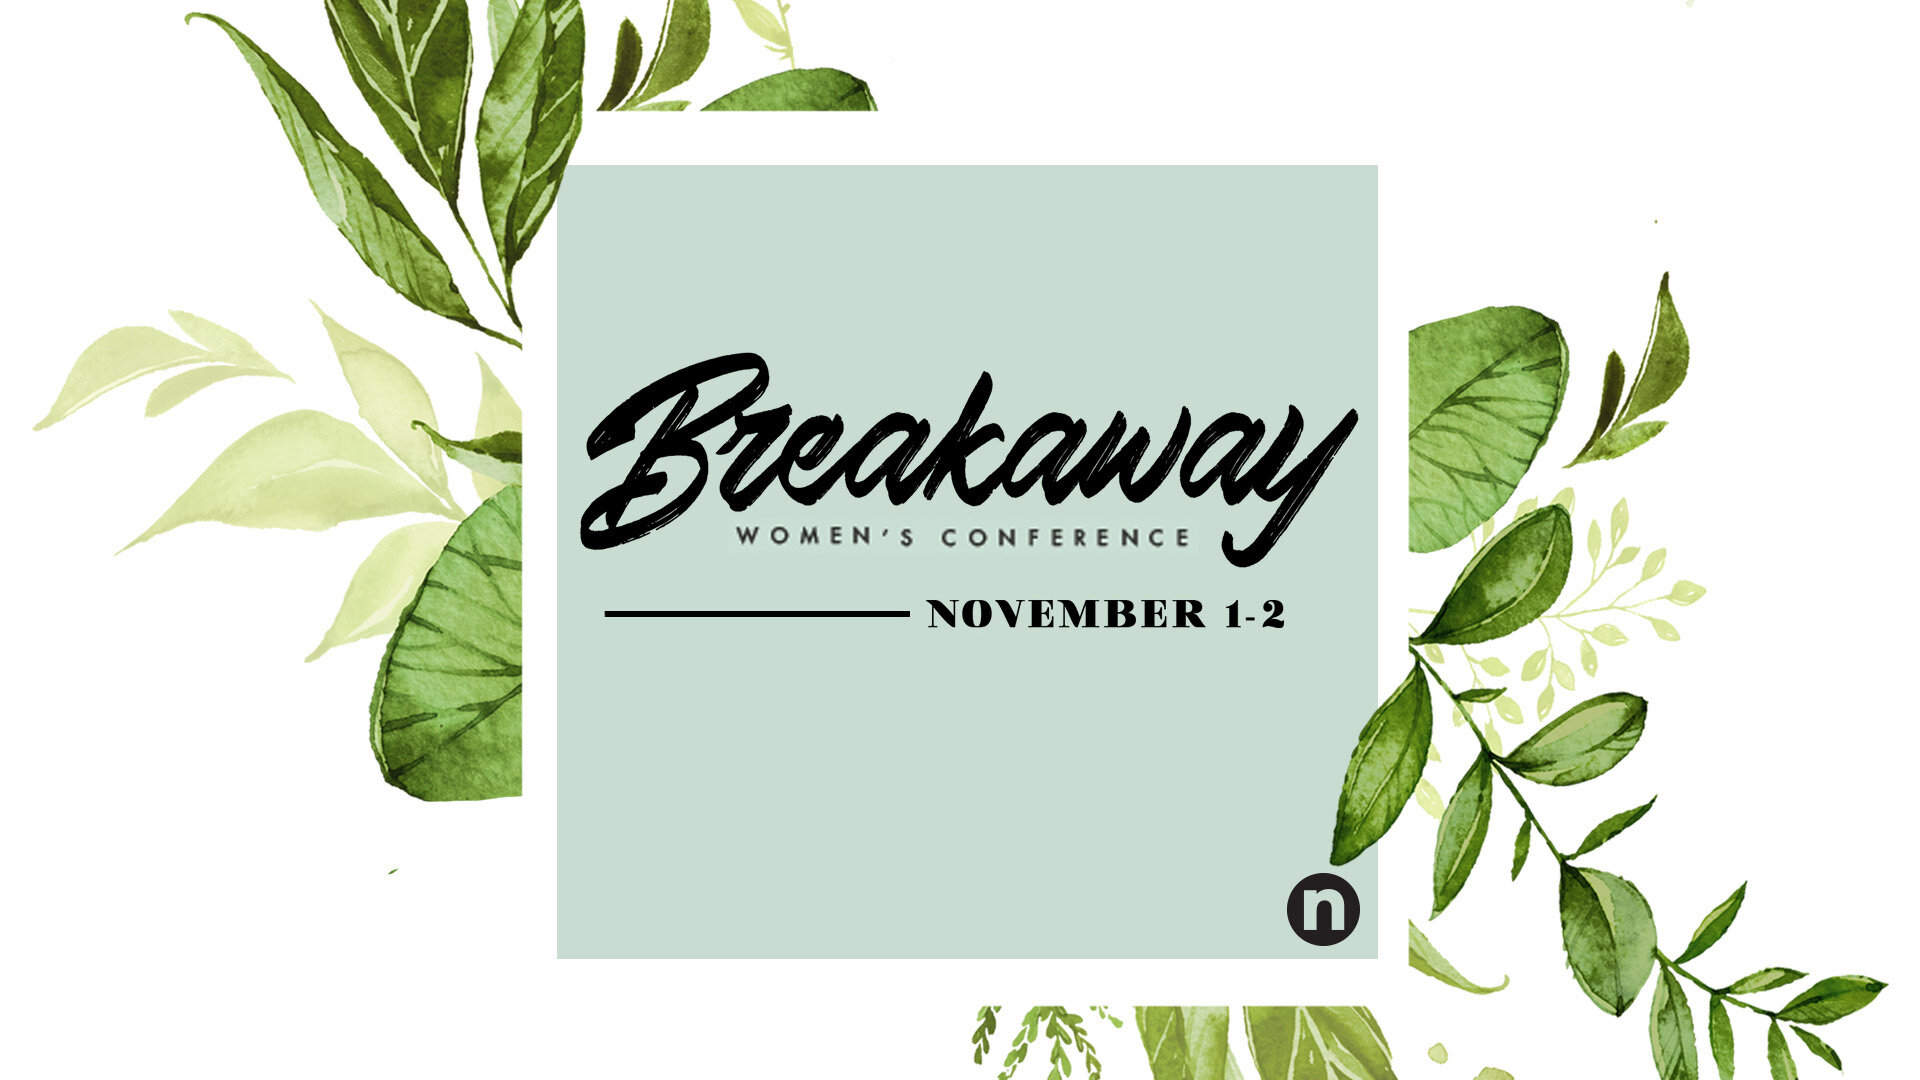 NOVEMBER 1-2BREAKAWAY WOMEN'S CONFERENCE - $45 WHEN TWO HIGH SCHOOL GIRLS SIGN UP TOGETHER.